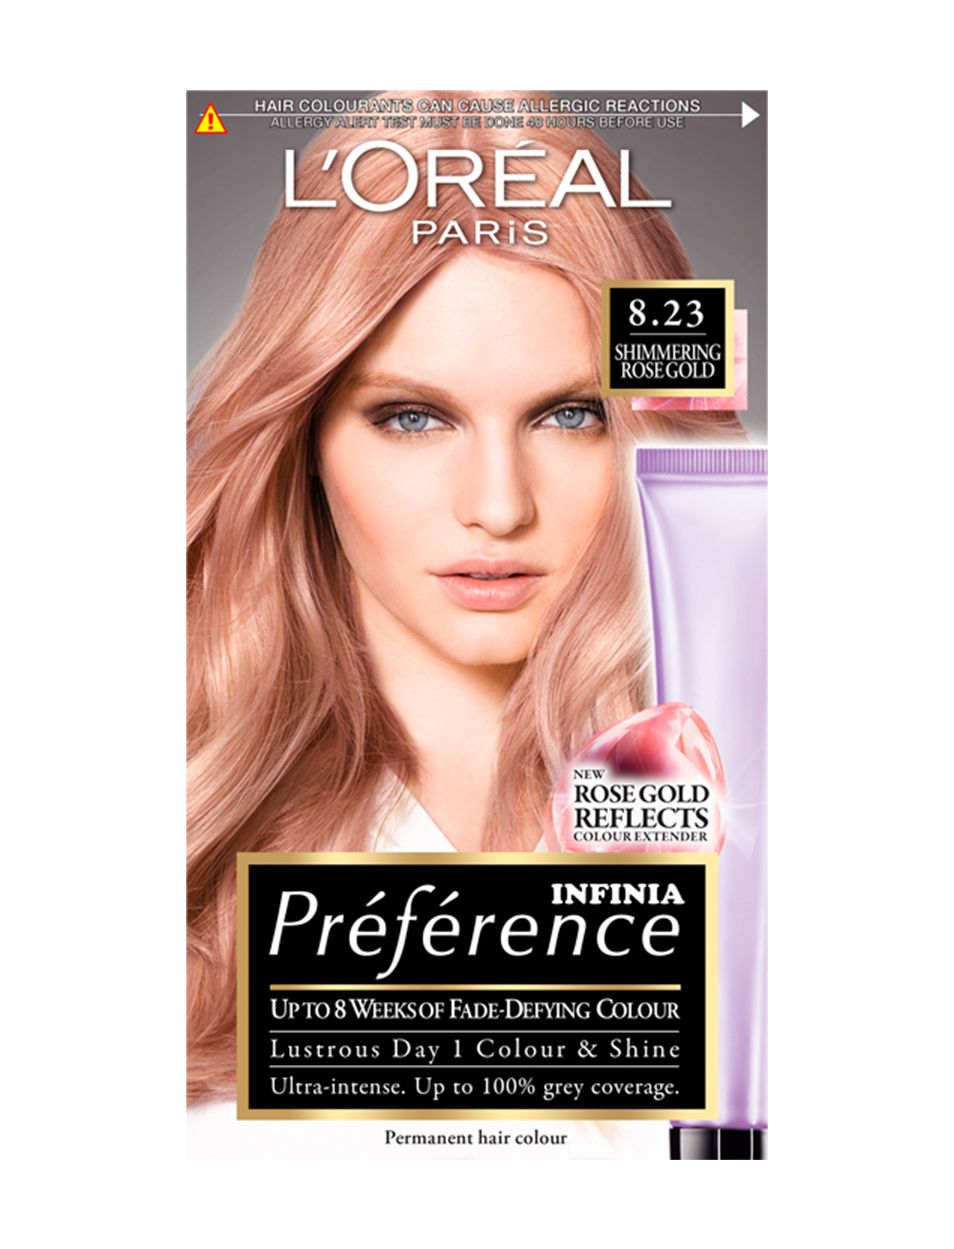 Prfrence Infinia Shimmering Rose Gold New Hair For Me